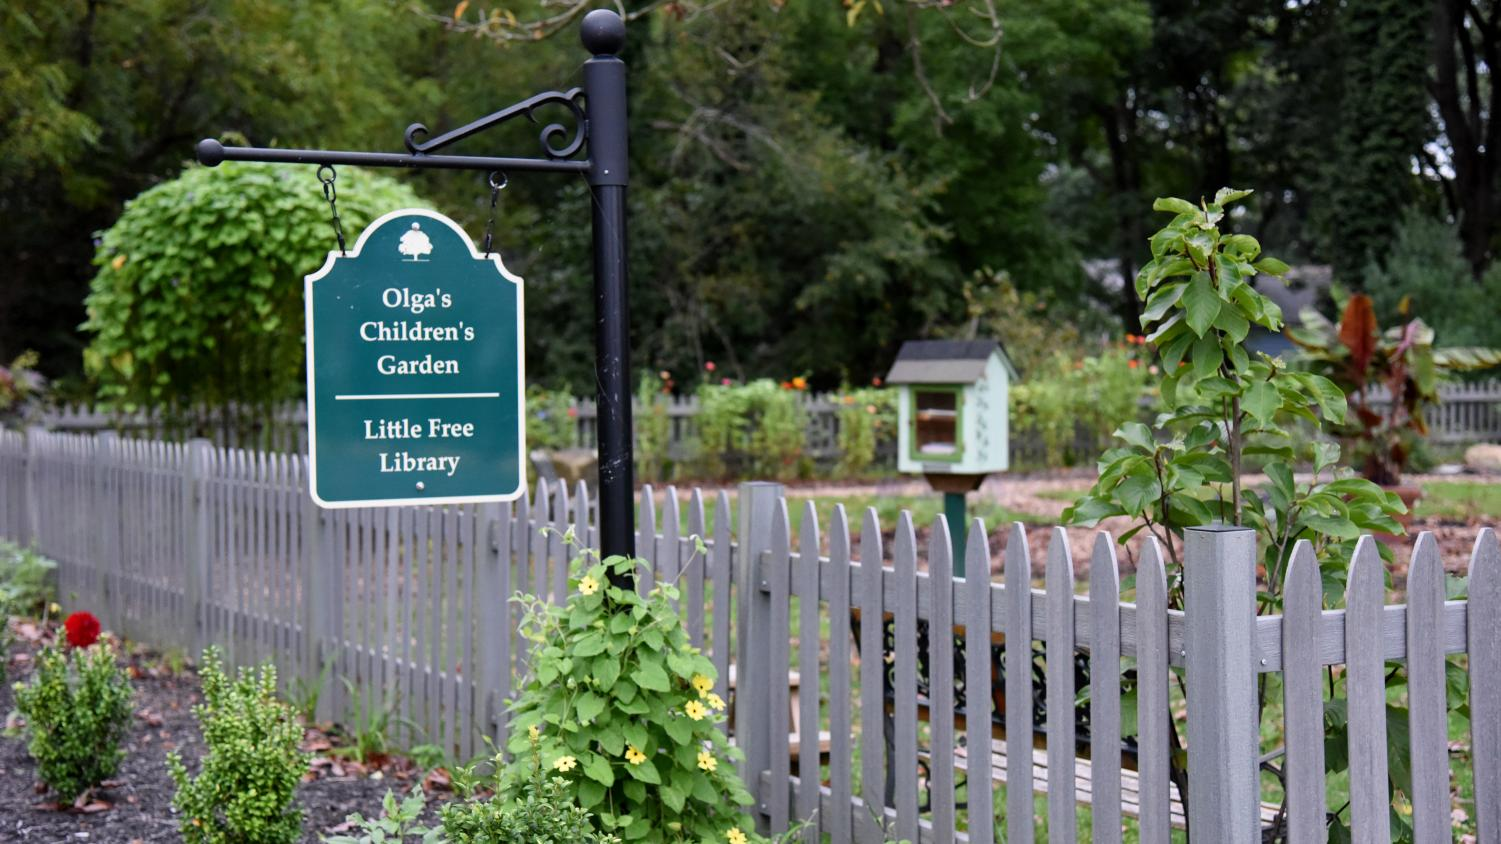 Olga's Children's Garden is located inside the Mission Oaks Garden, a Muskingum Valley Park District property, at 424 Hunter Ave. in Zanesville.